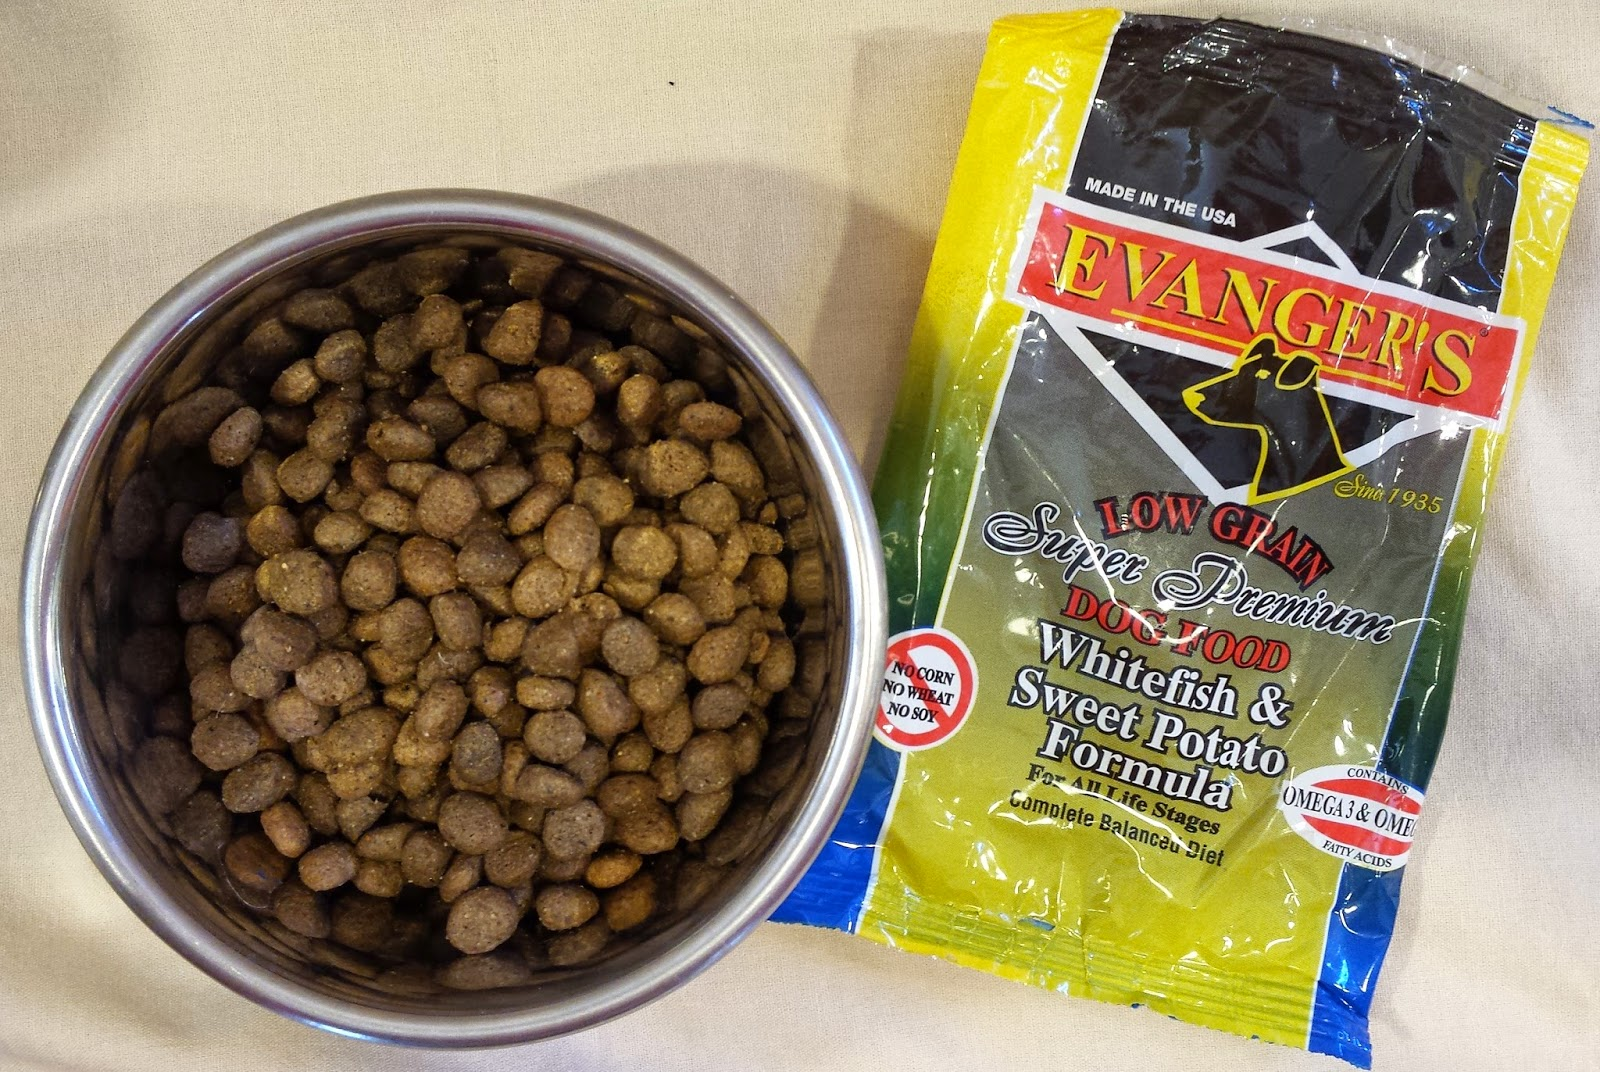 Evangers Dog Food Where To Buy